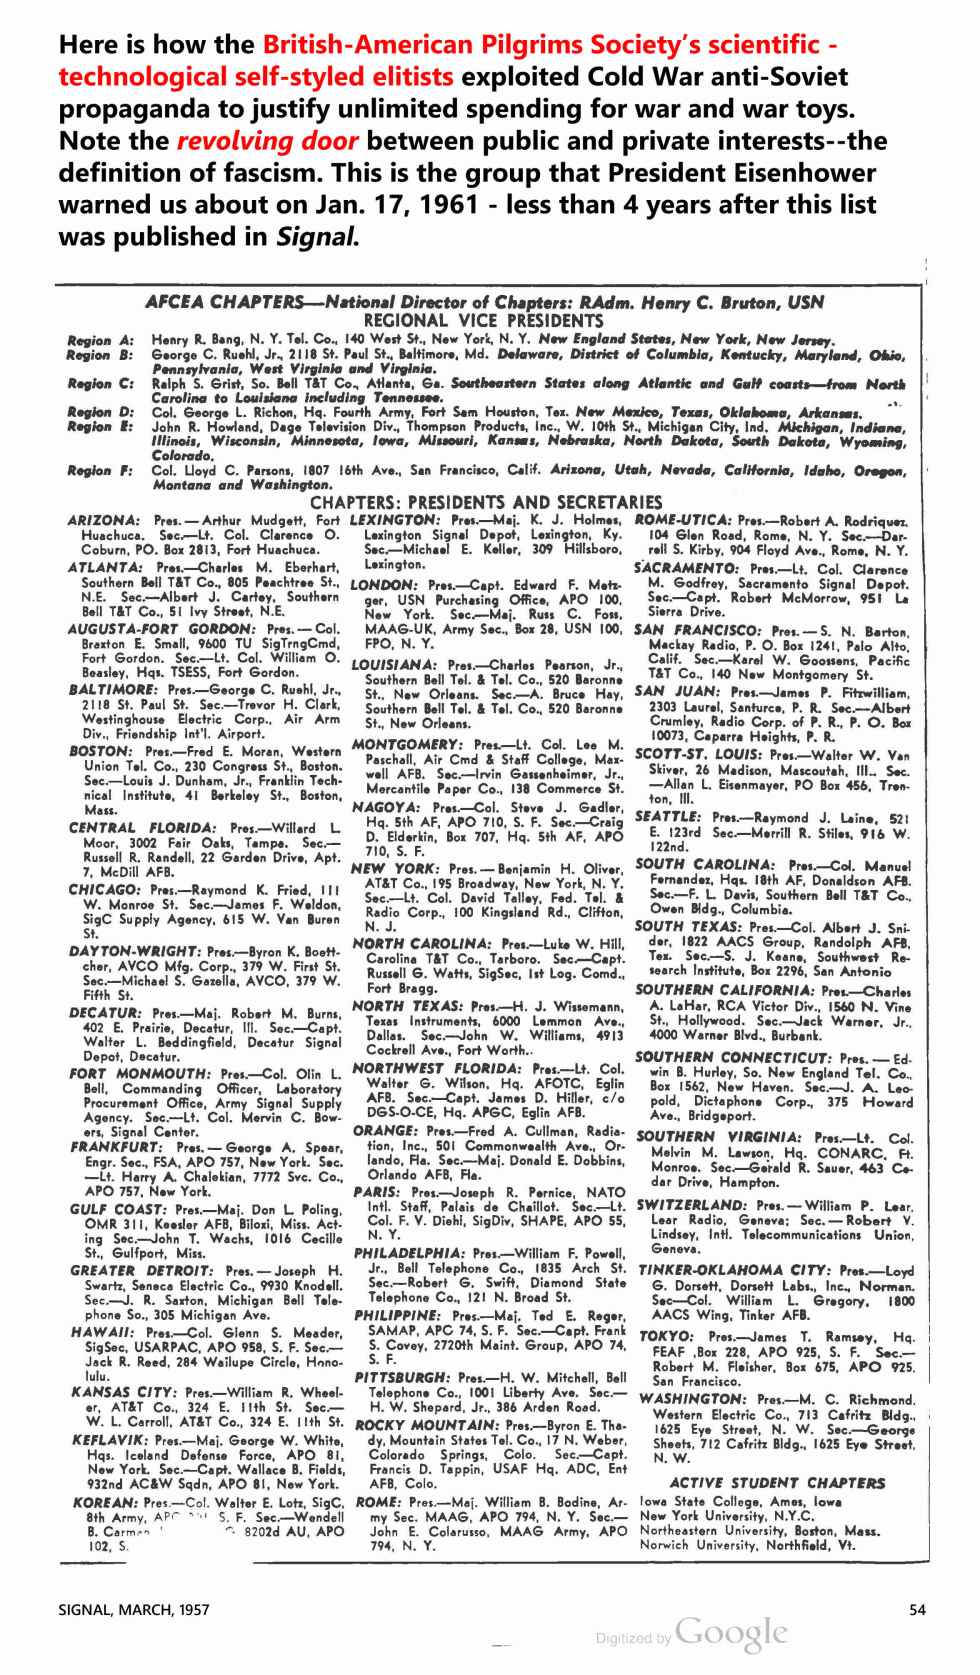 1957-01-01-Journal-of-the-Armed-Forces-Communications-and-Electronics-Association-(AFCEA)-WJ-Baird-ed-Vol-11-No-05-893-pgs-PDF-p-175-Signal-Jan-01-1957